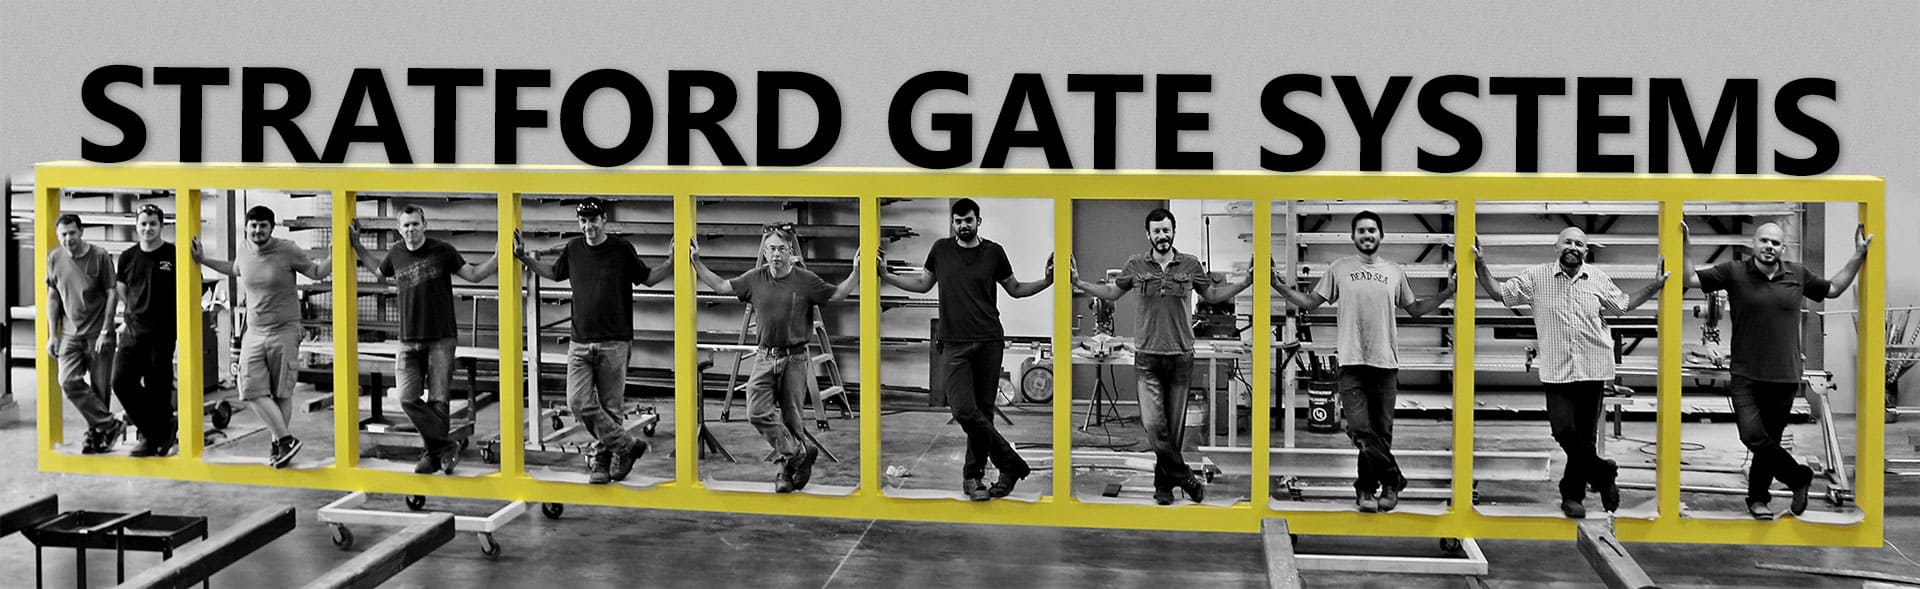 sgs meetTeam Stratford gate systems